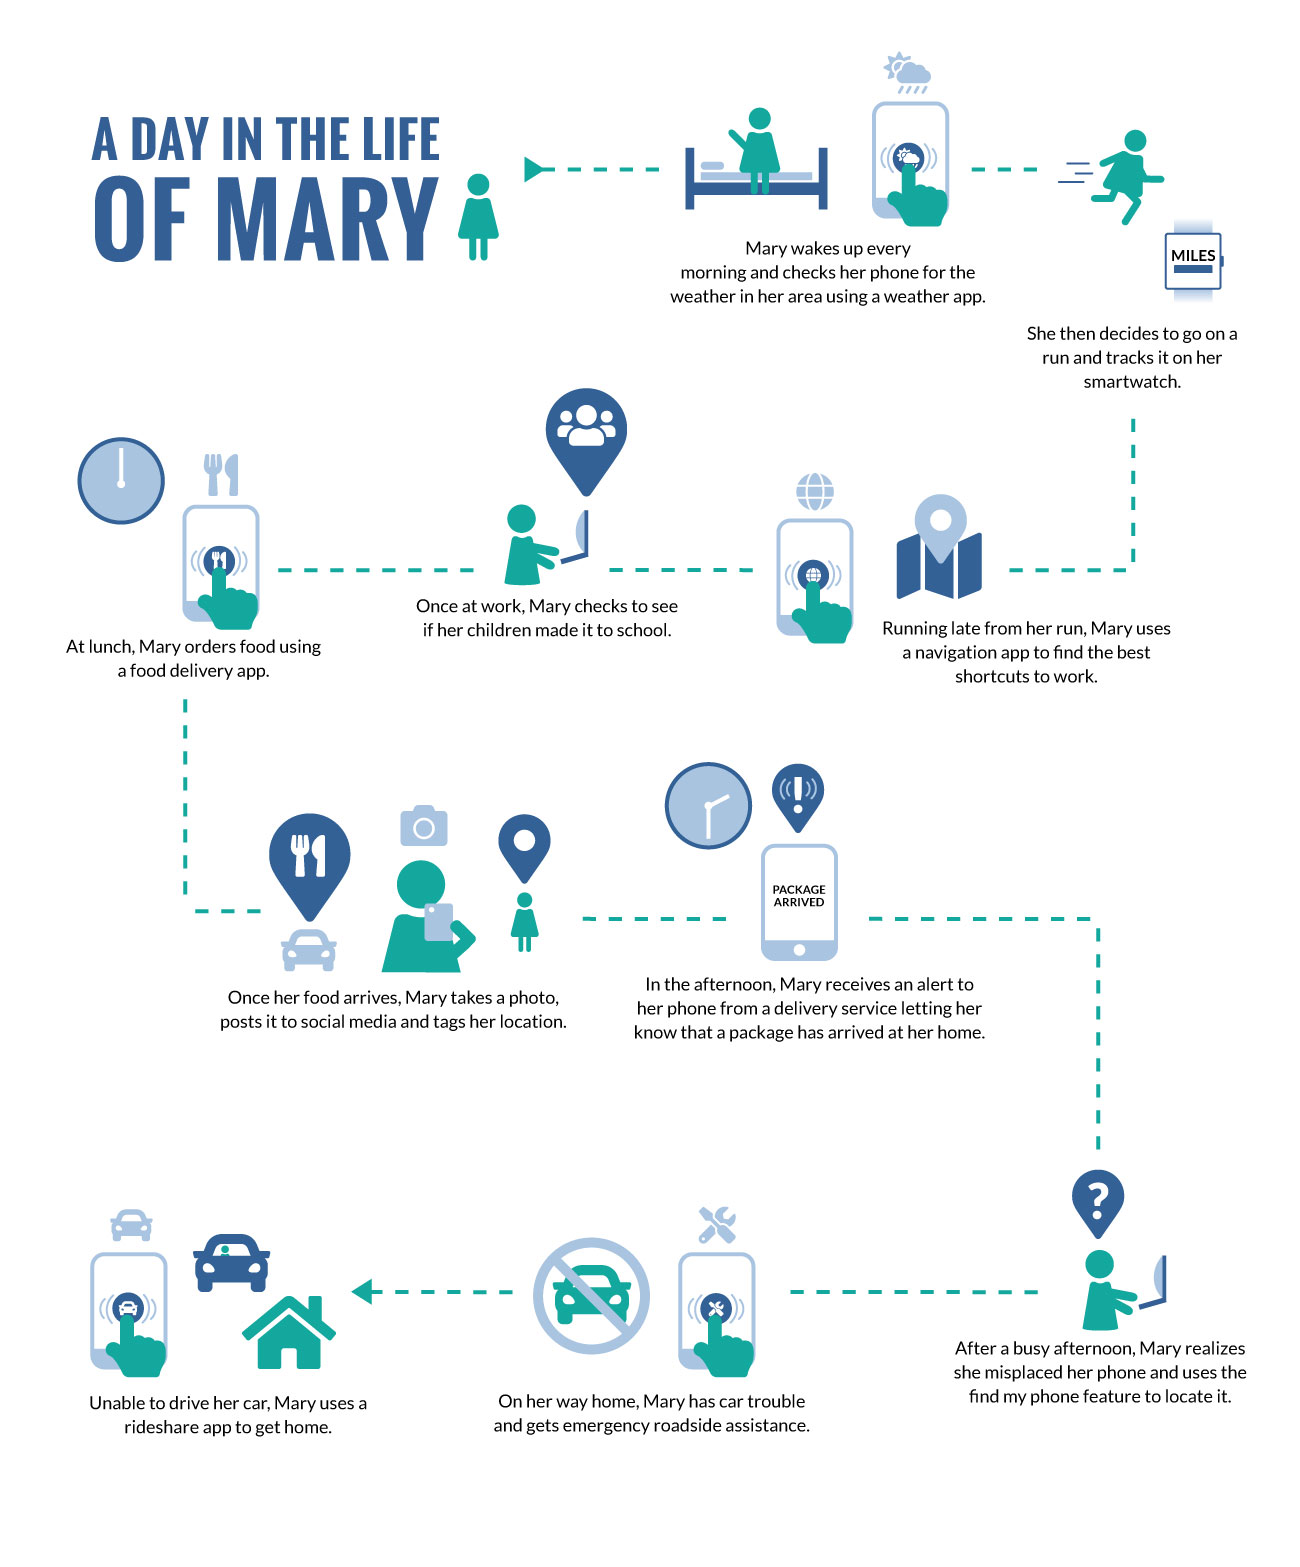 a day in the life of Mary infographic portrait